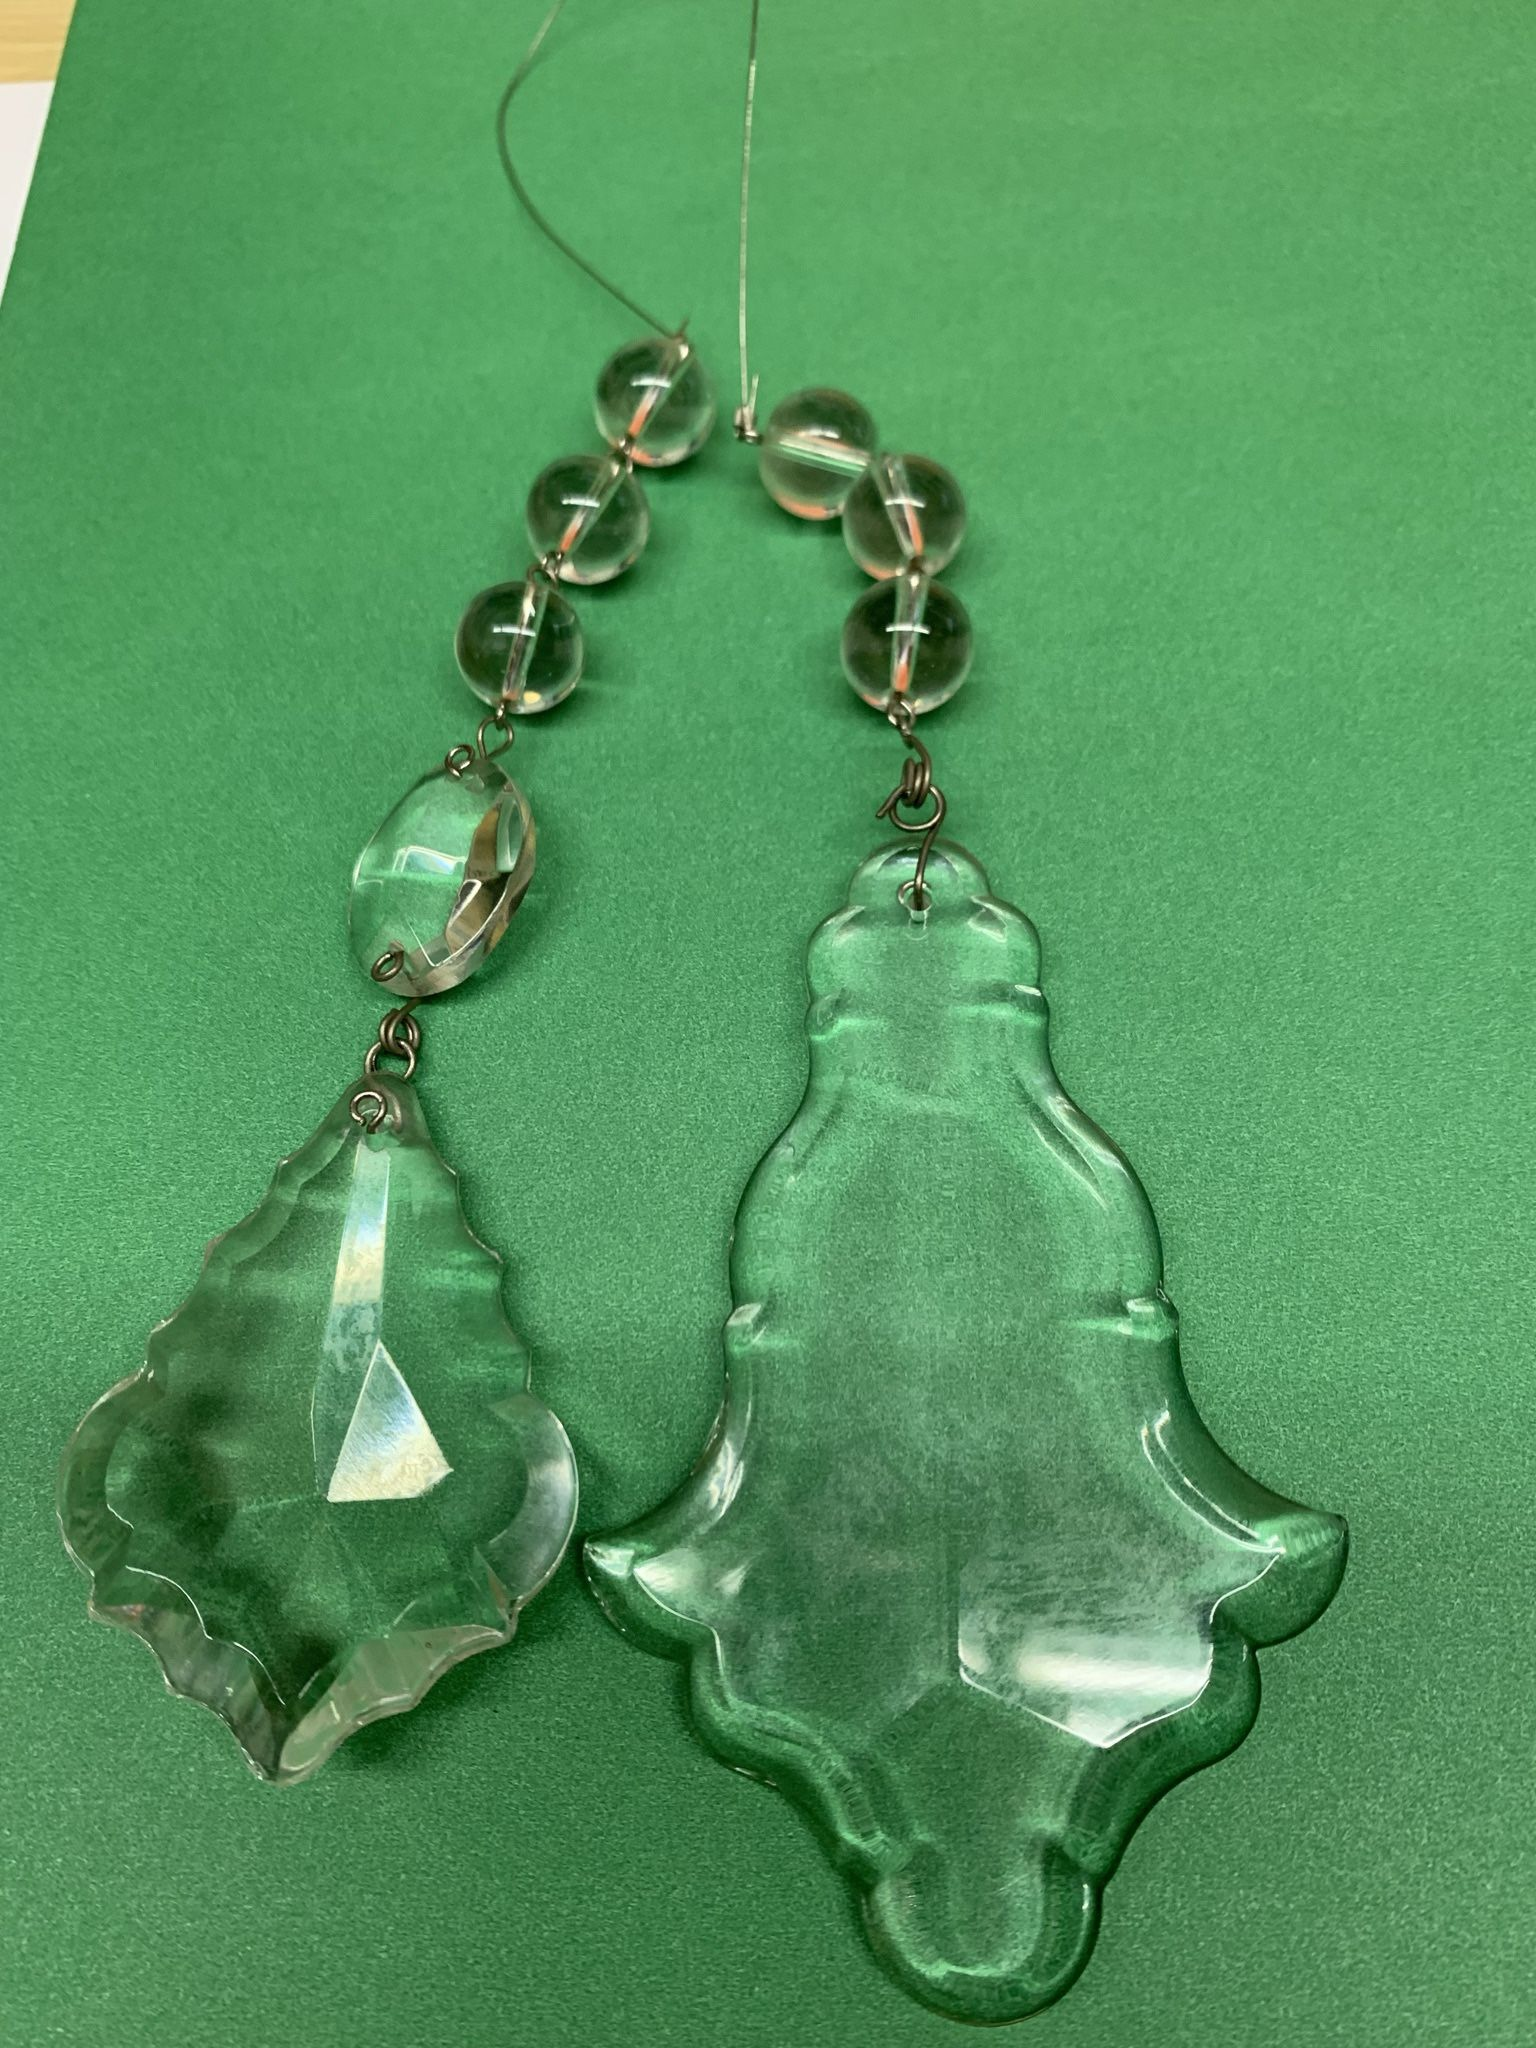 Crystals For Chandelier 20 Pieces For 25$